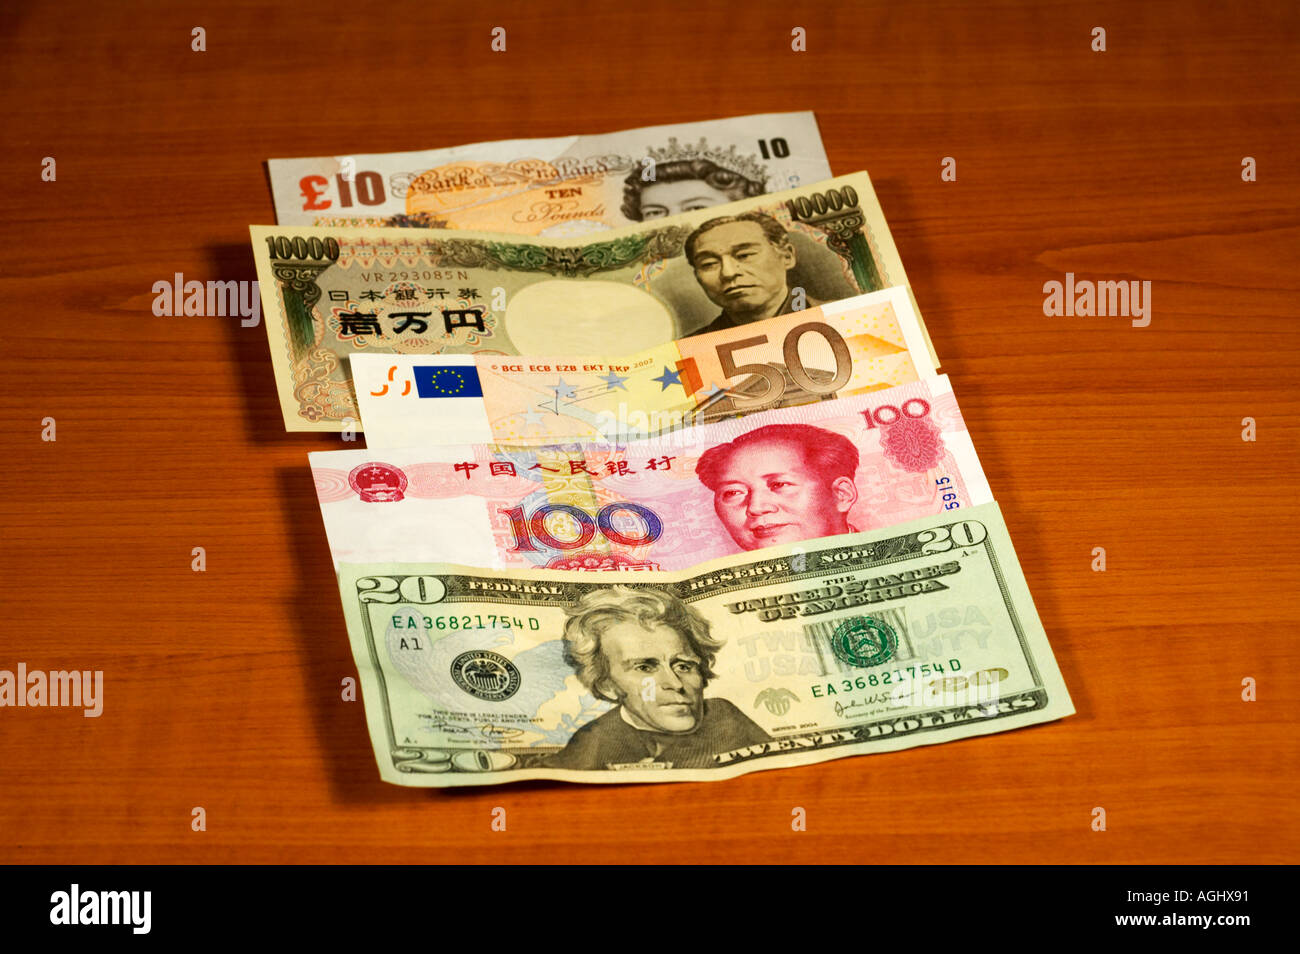 International World Currency spread on table US Dollar Chinese Yuan Euro Japanese Yen UK Sterling Pounds - Stock Image